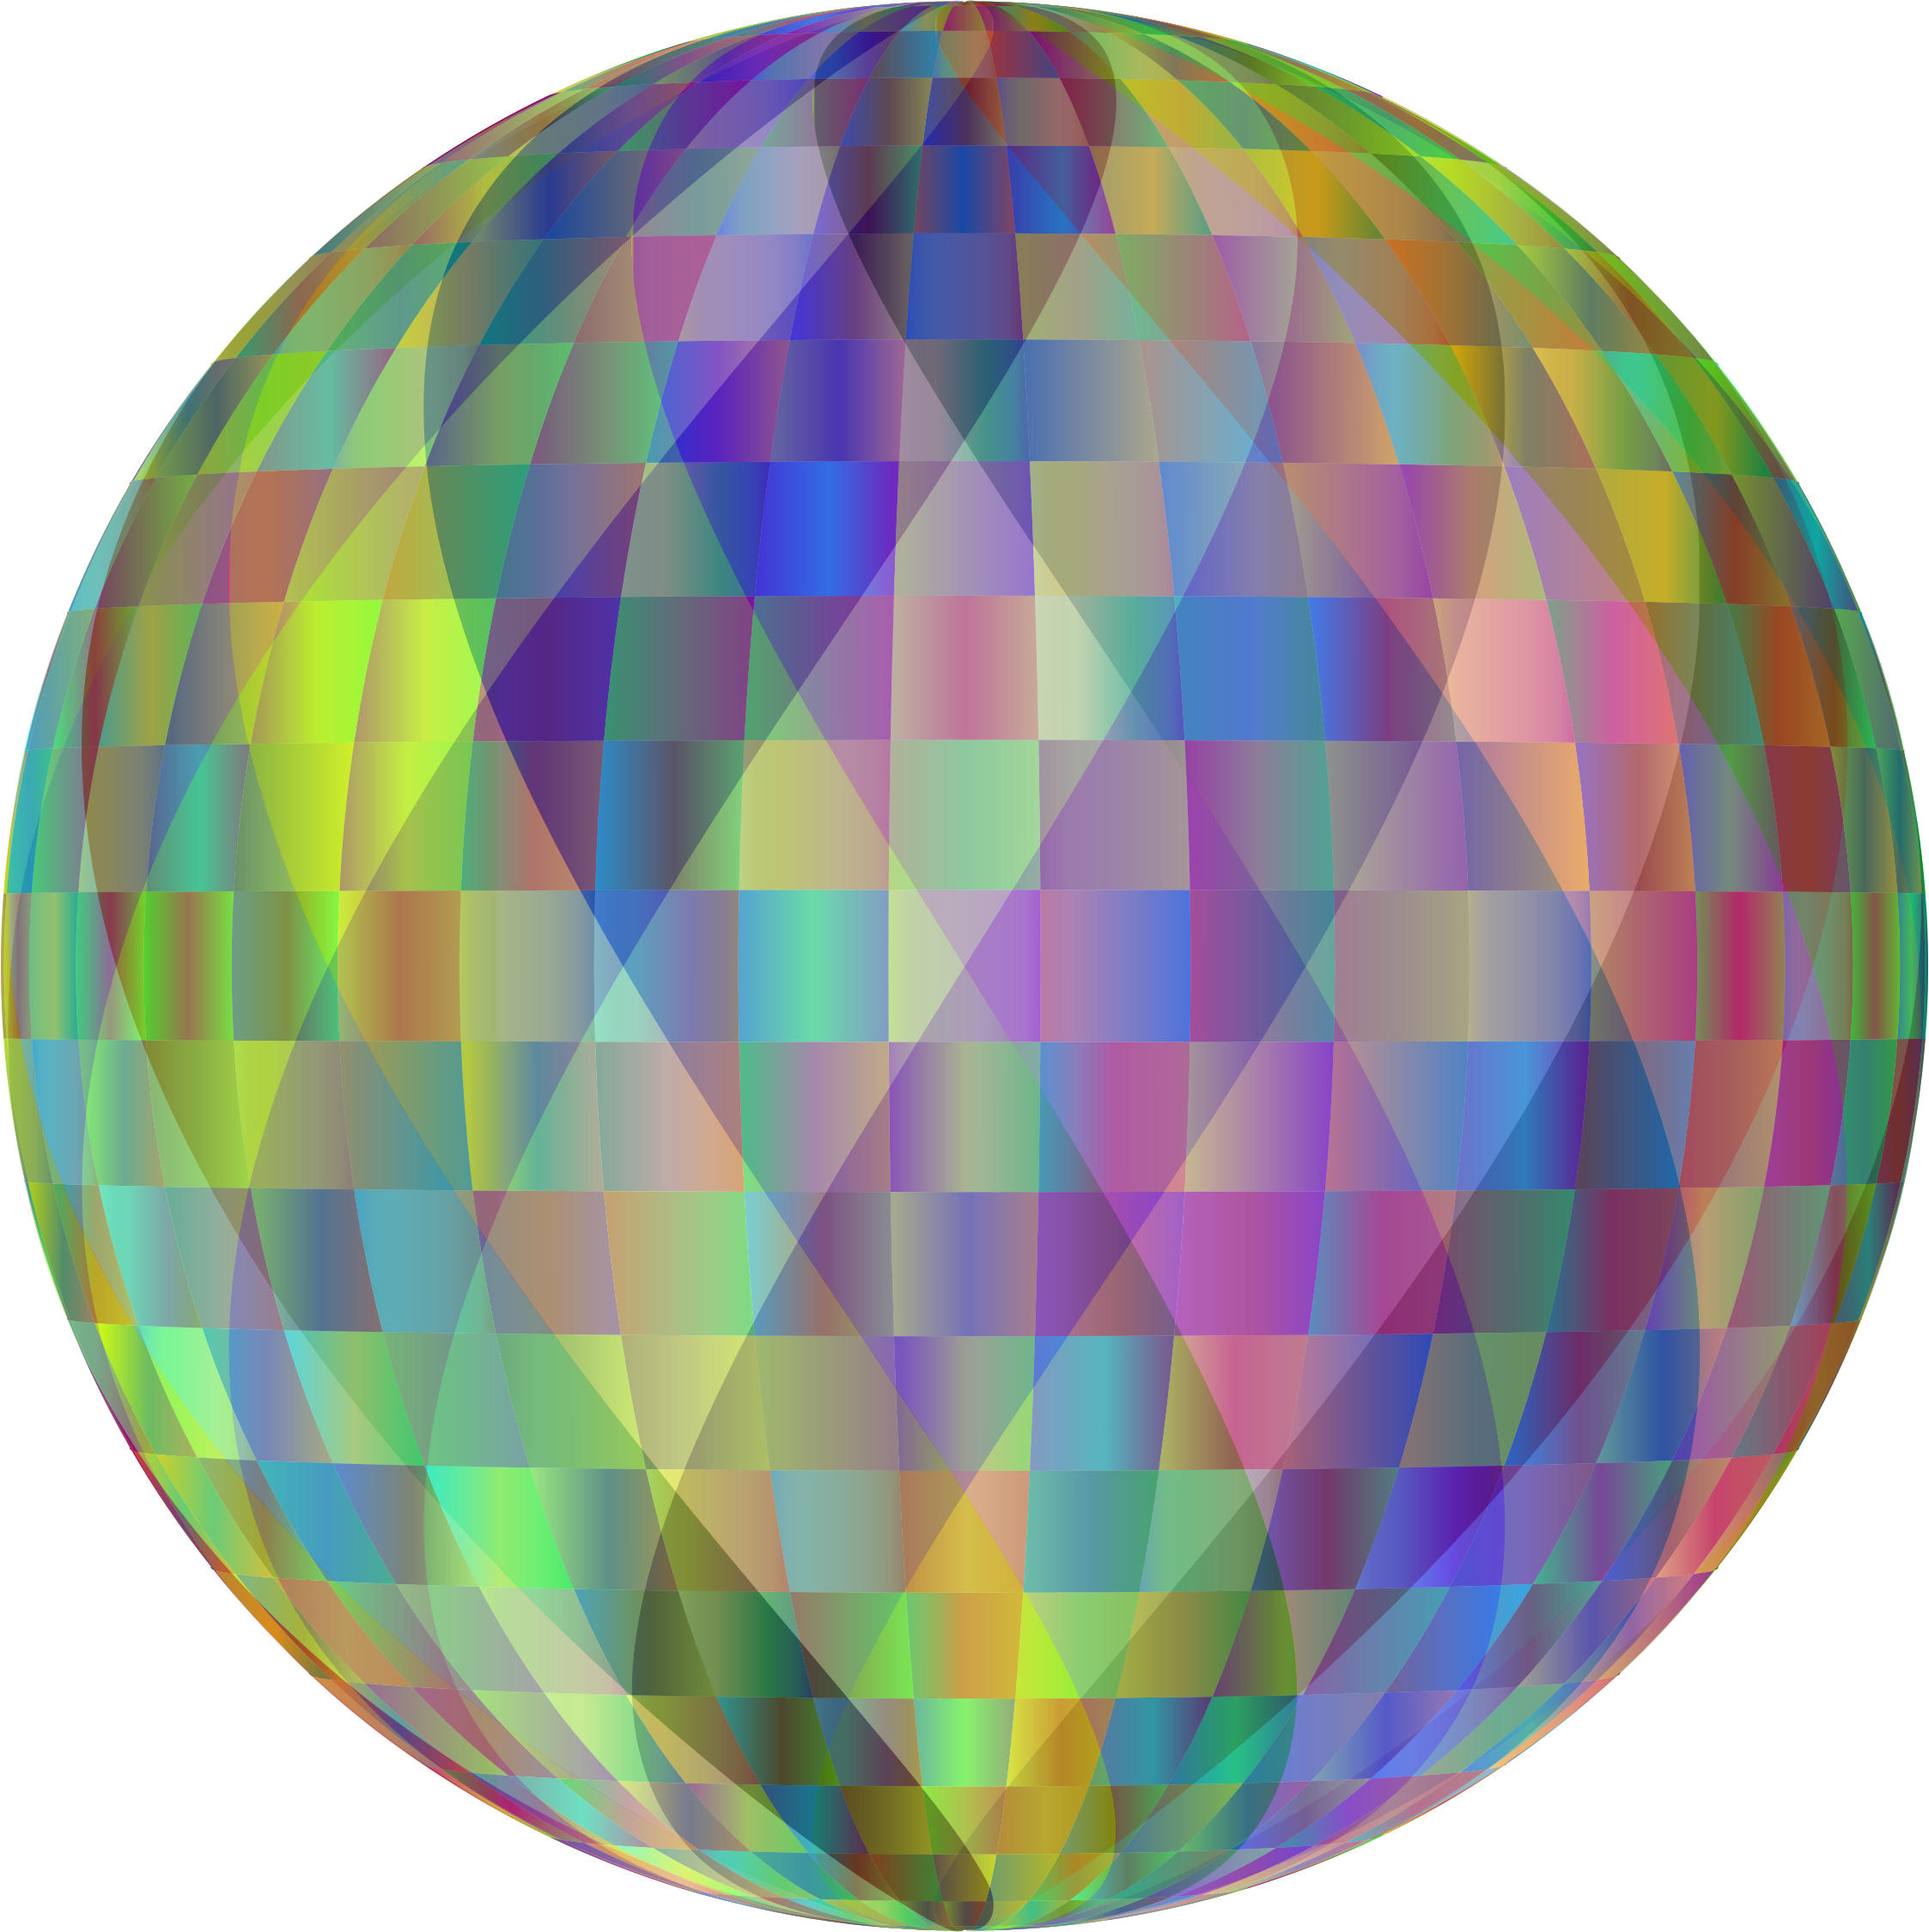 Geometric sphere png. Prismatic abstract icons free